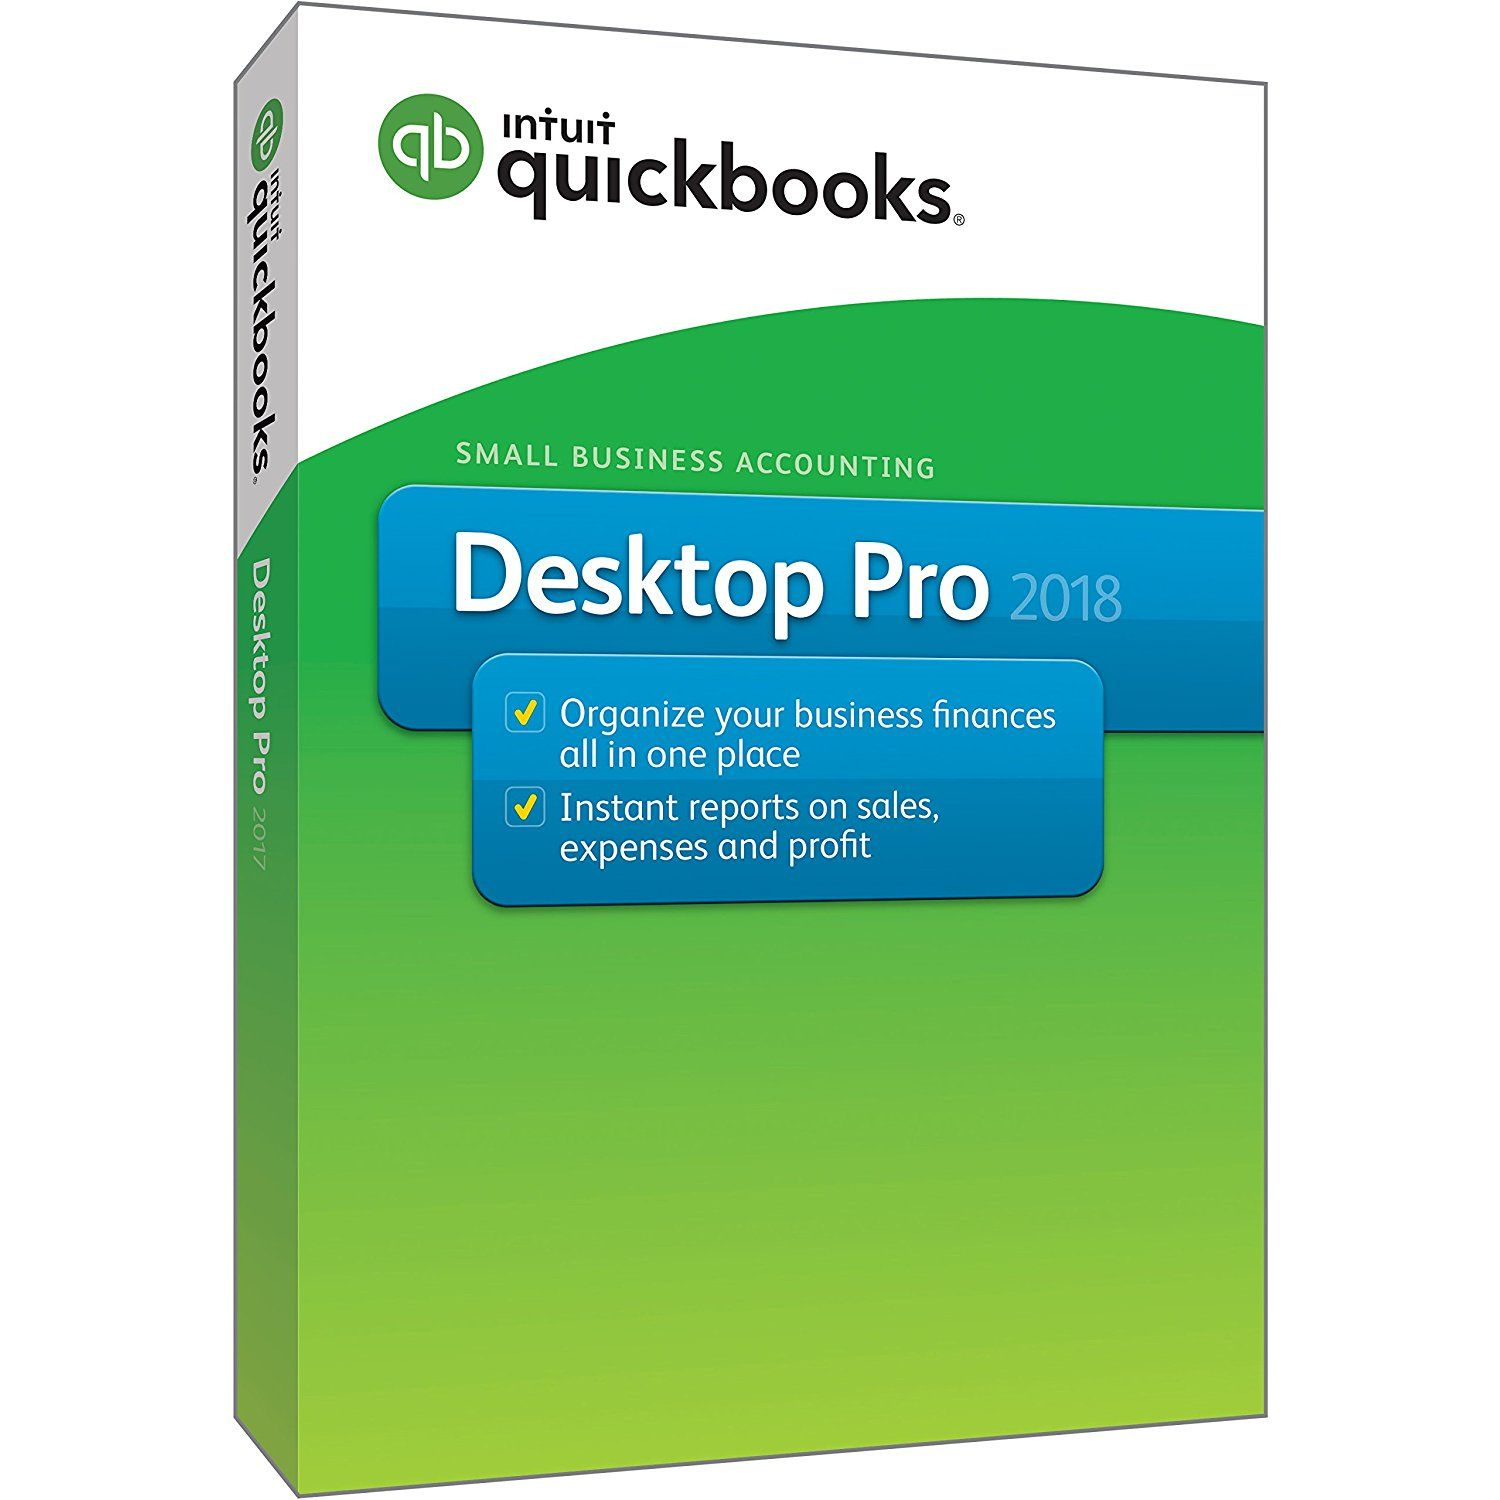 intuit quickbooks desktop pro 2018 small business accounting